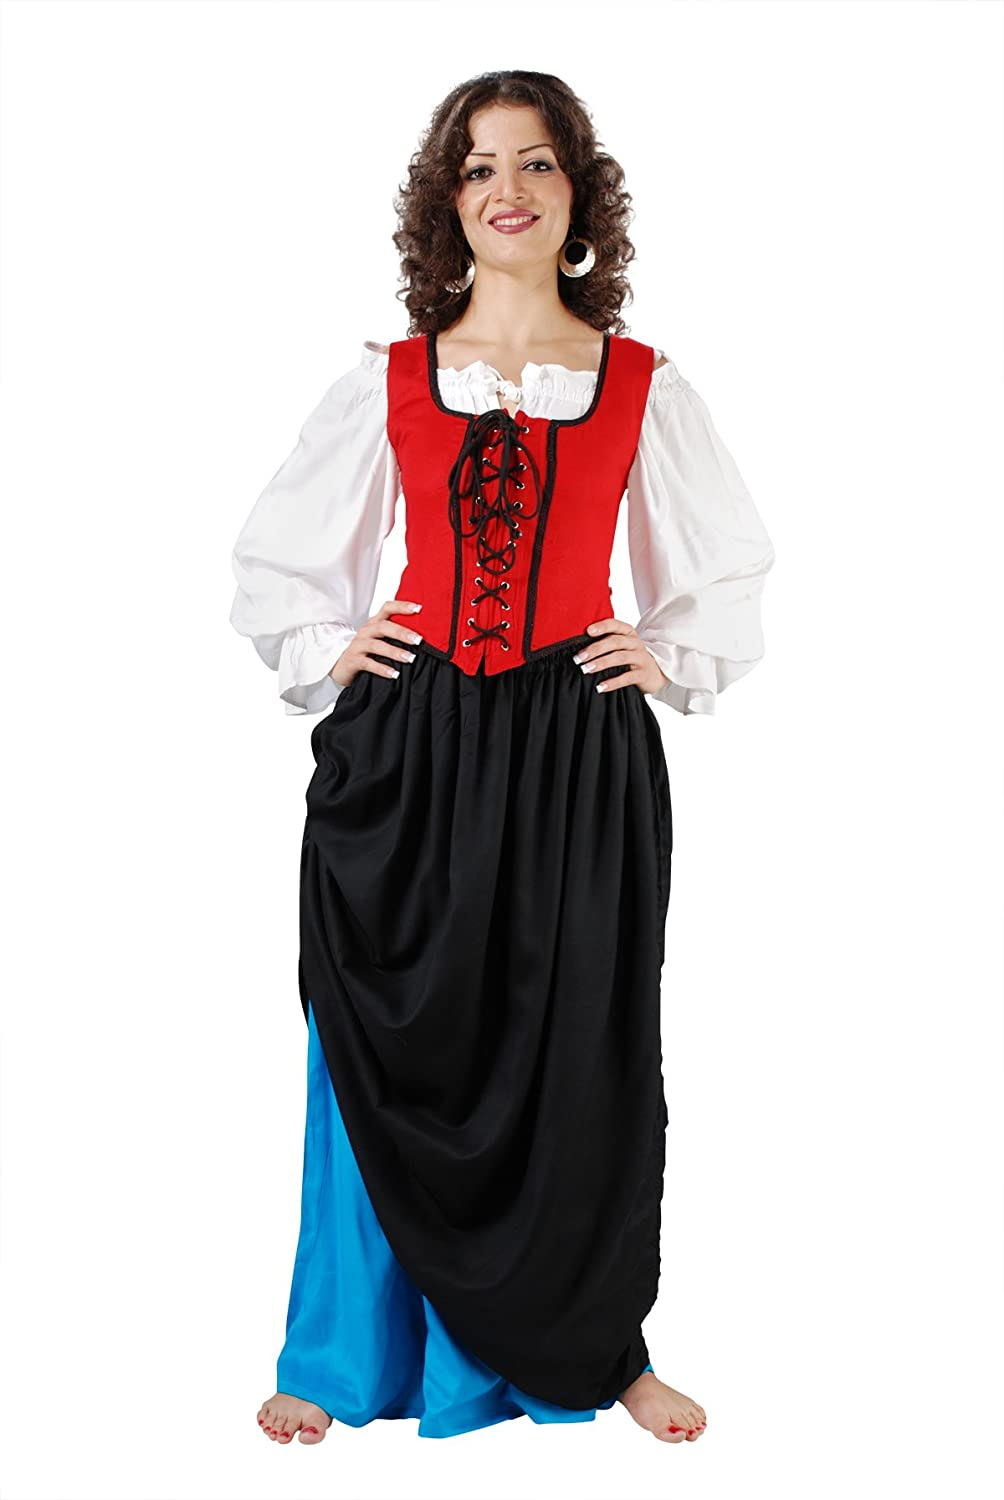 Women's Double-Layer Black and Turquoise Medieval Renaissance Skirt by Armor Venue - DeluxeAdultCostumes.com